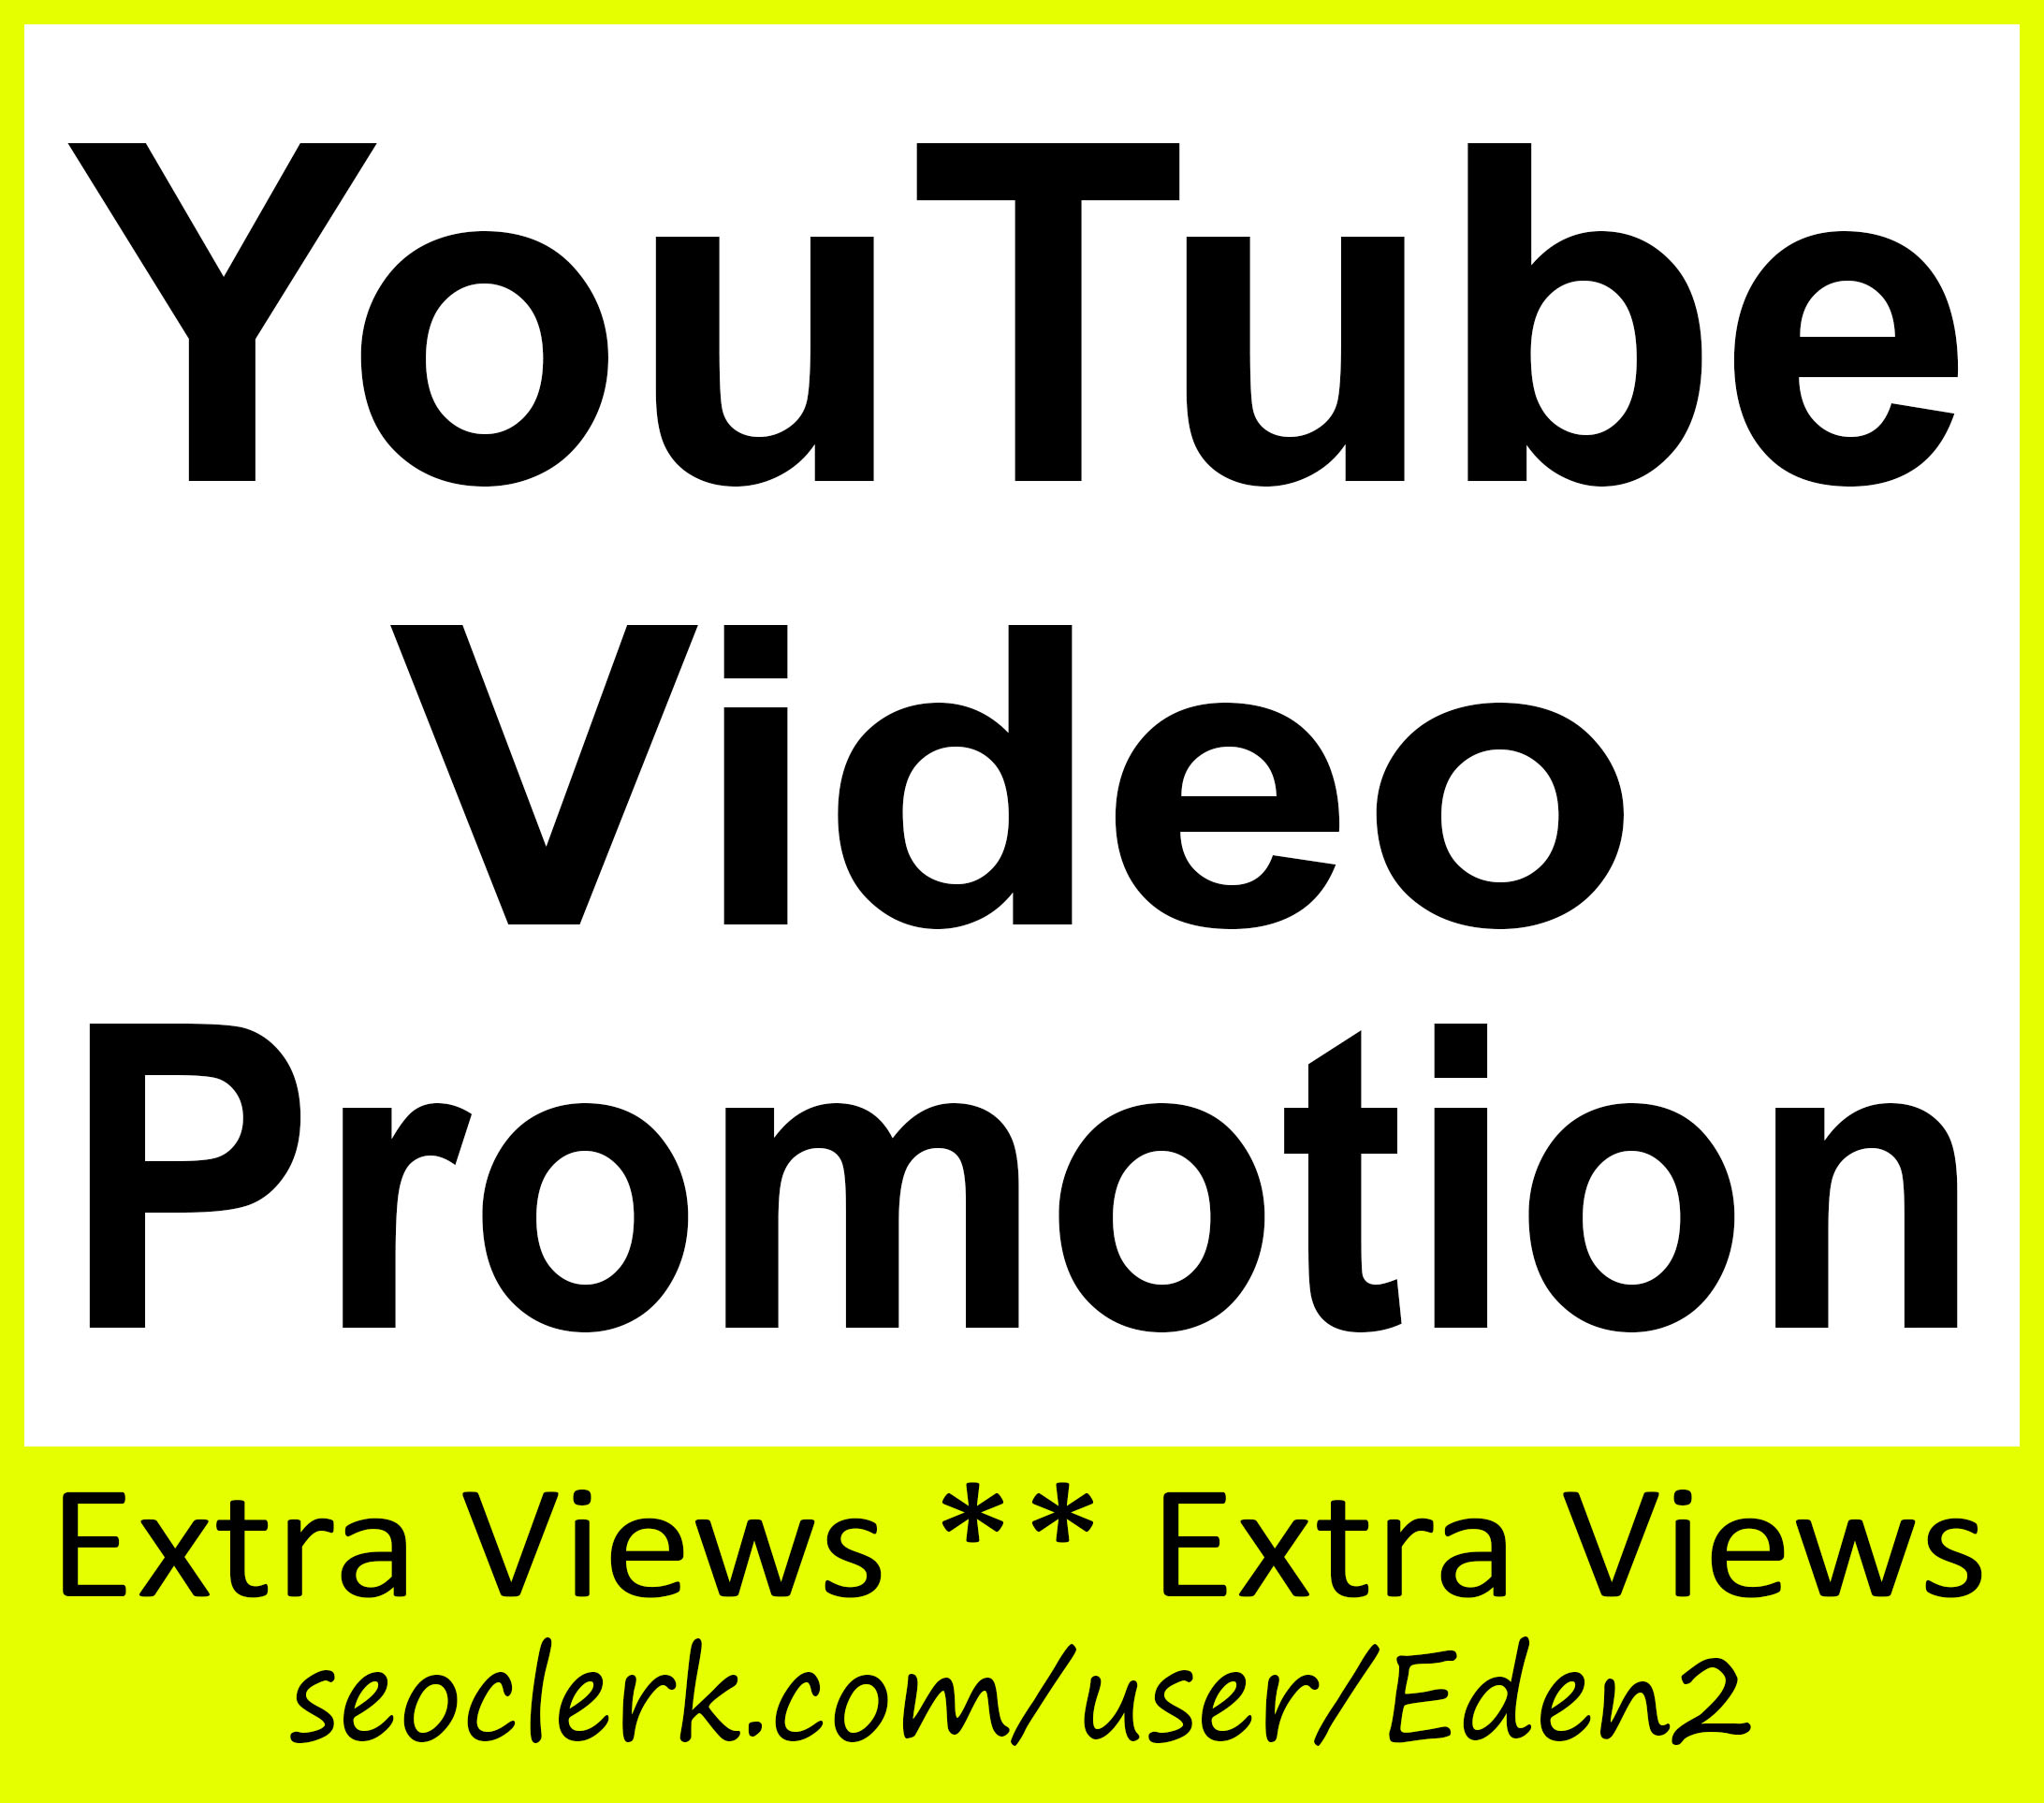 YouTube Video Promotion Service and Good For Ranking